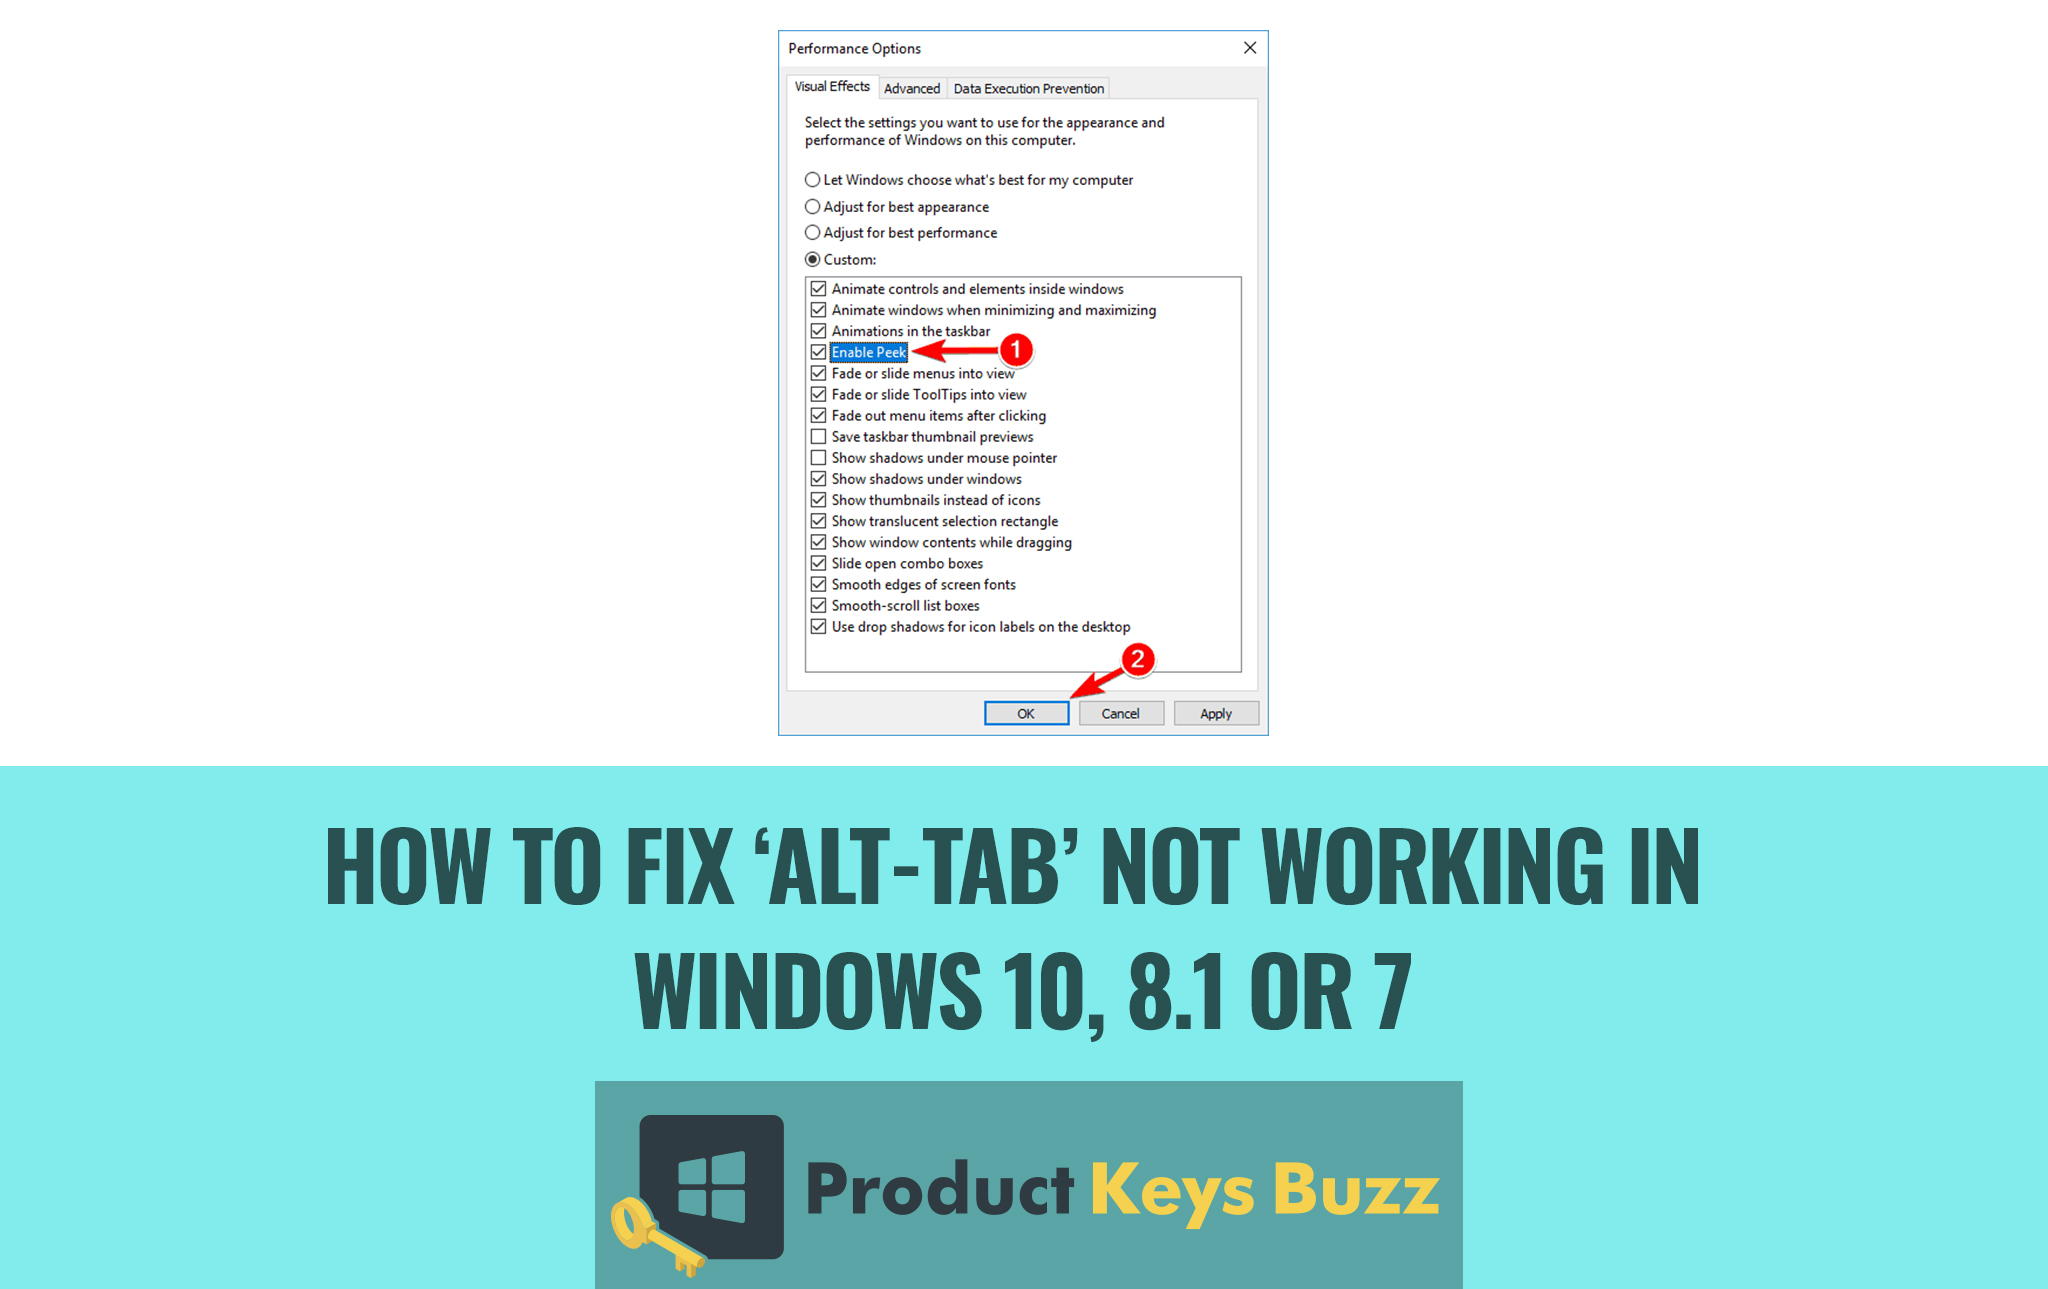 How to Fix 'Alt-Tab' Not Working in Windows 10, 8.1 or 7